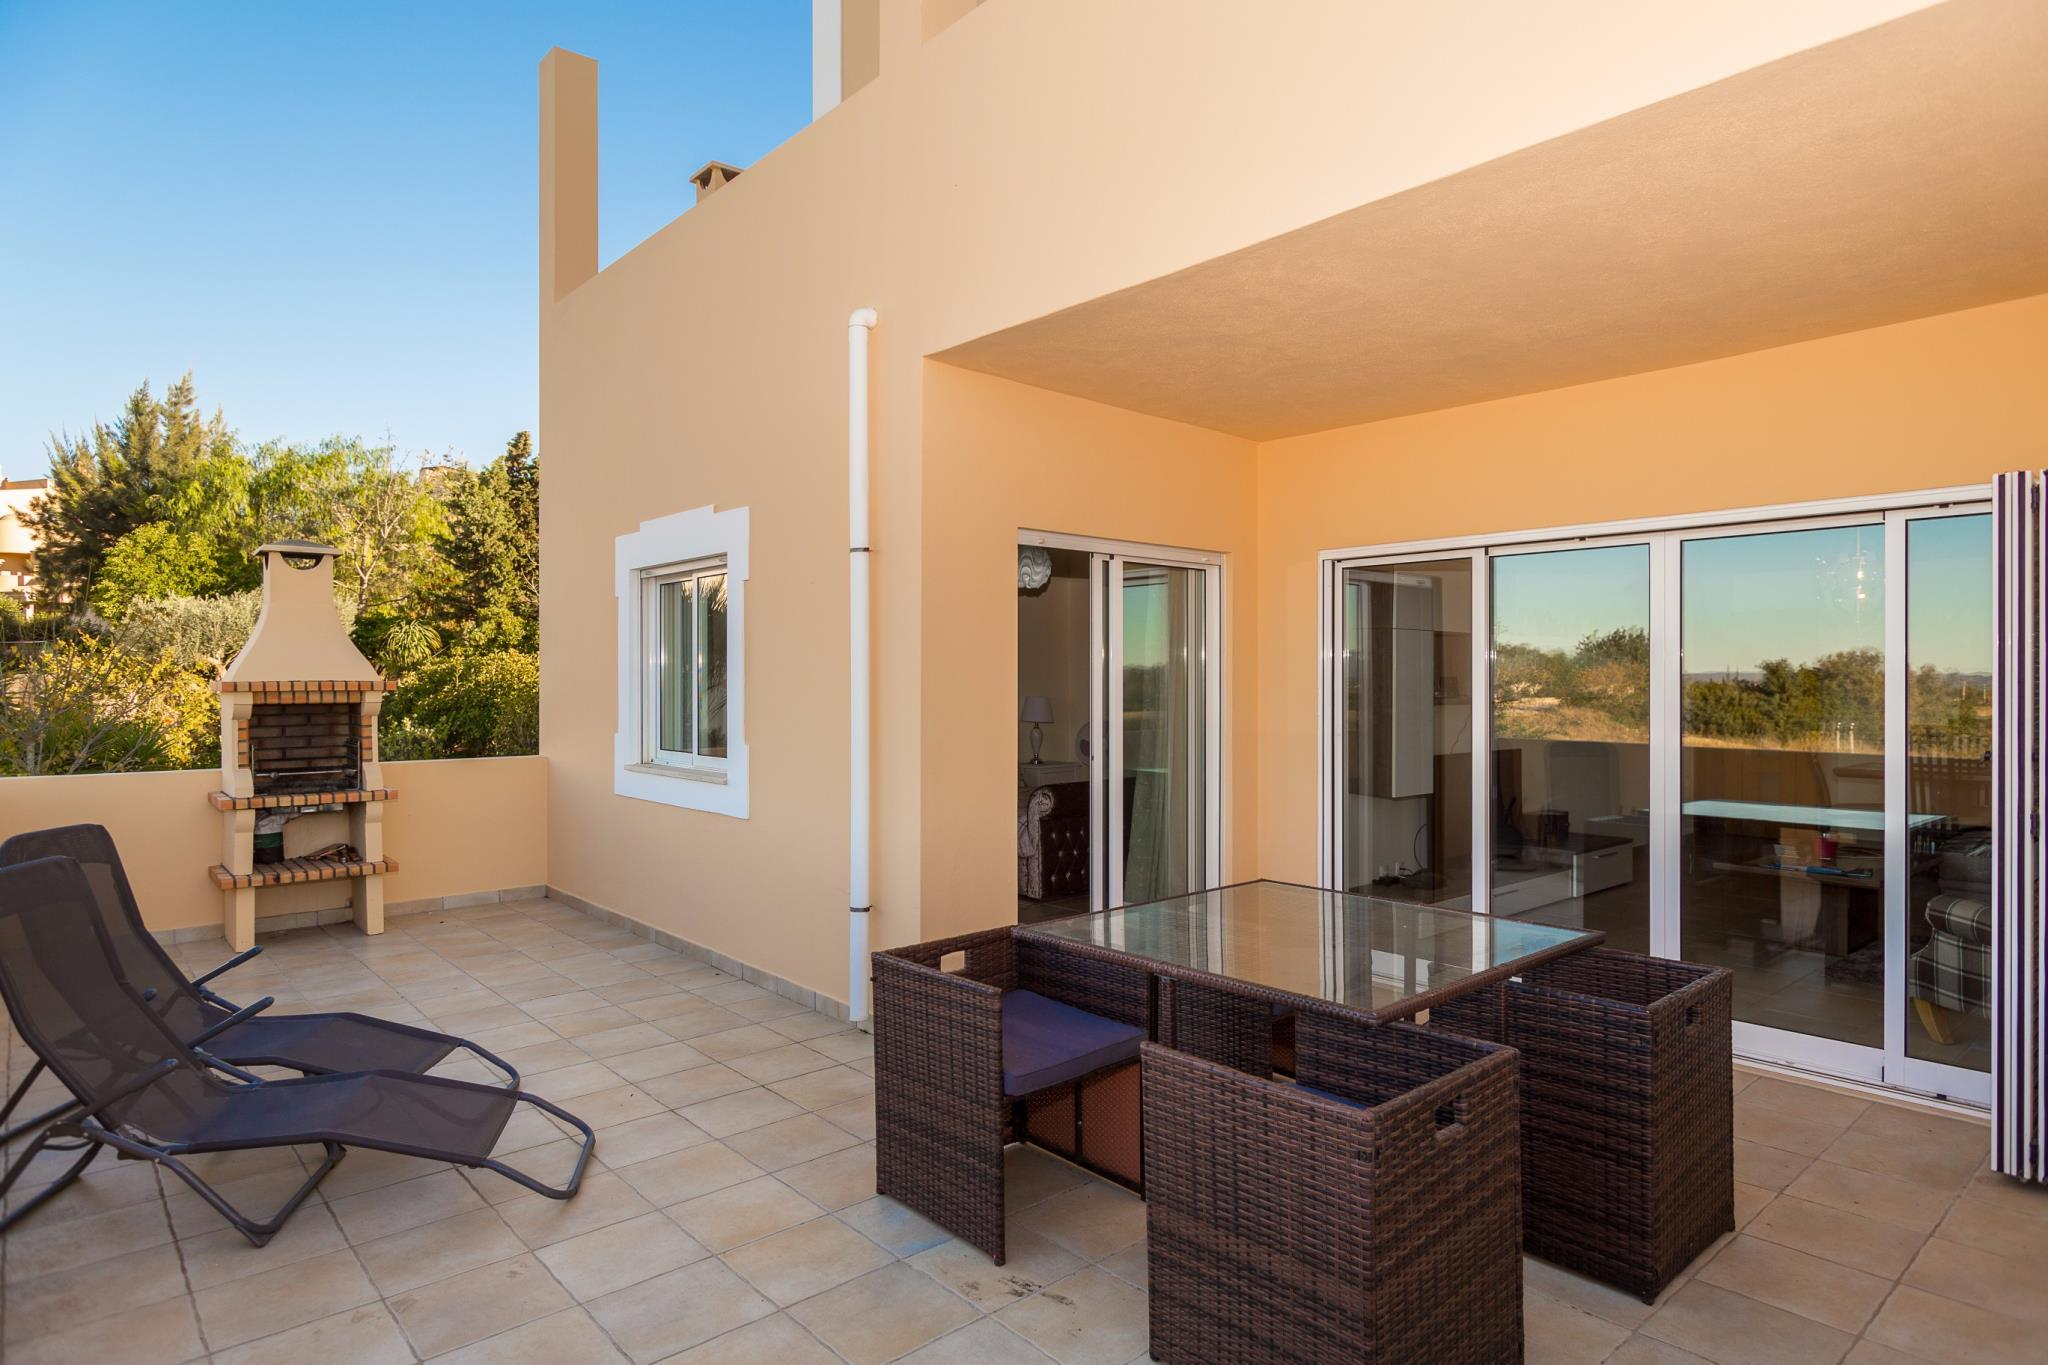 2 Bed Apt With Communal Pool And Stunning Views